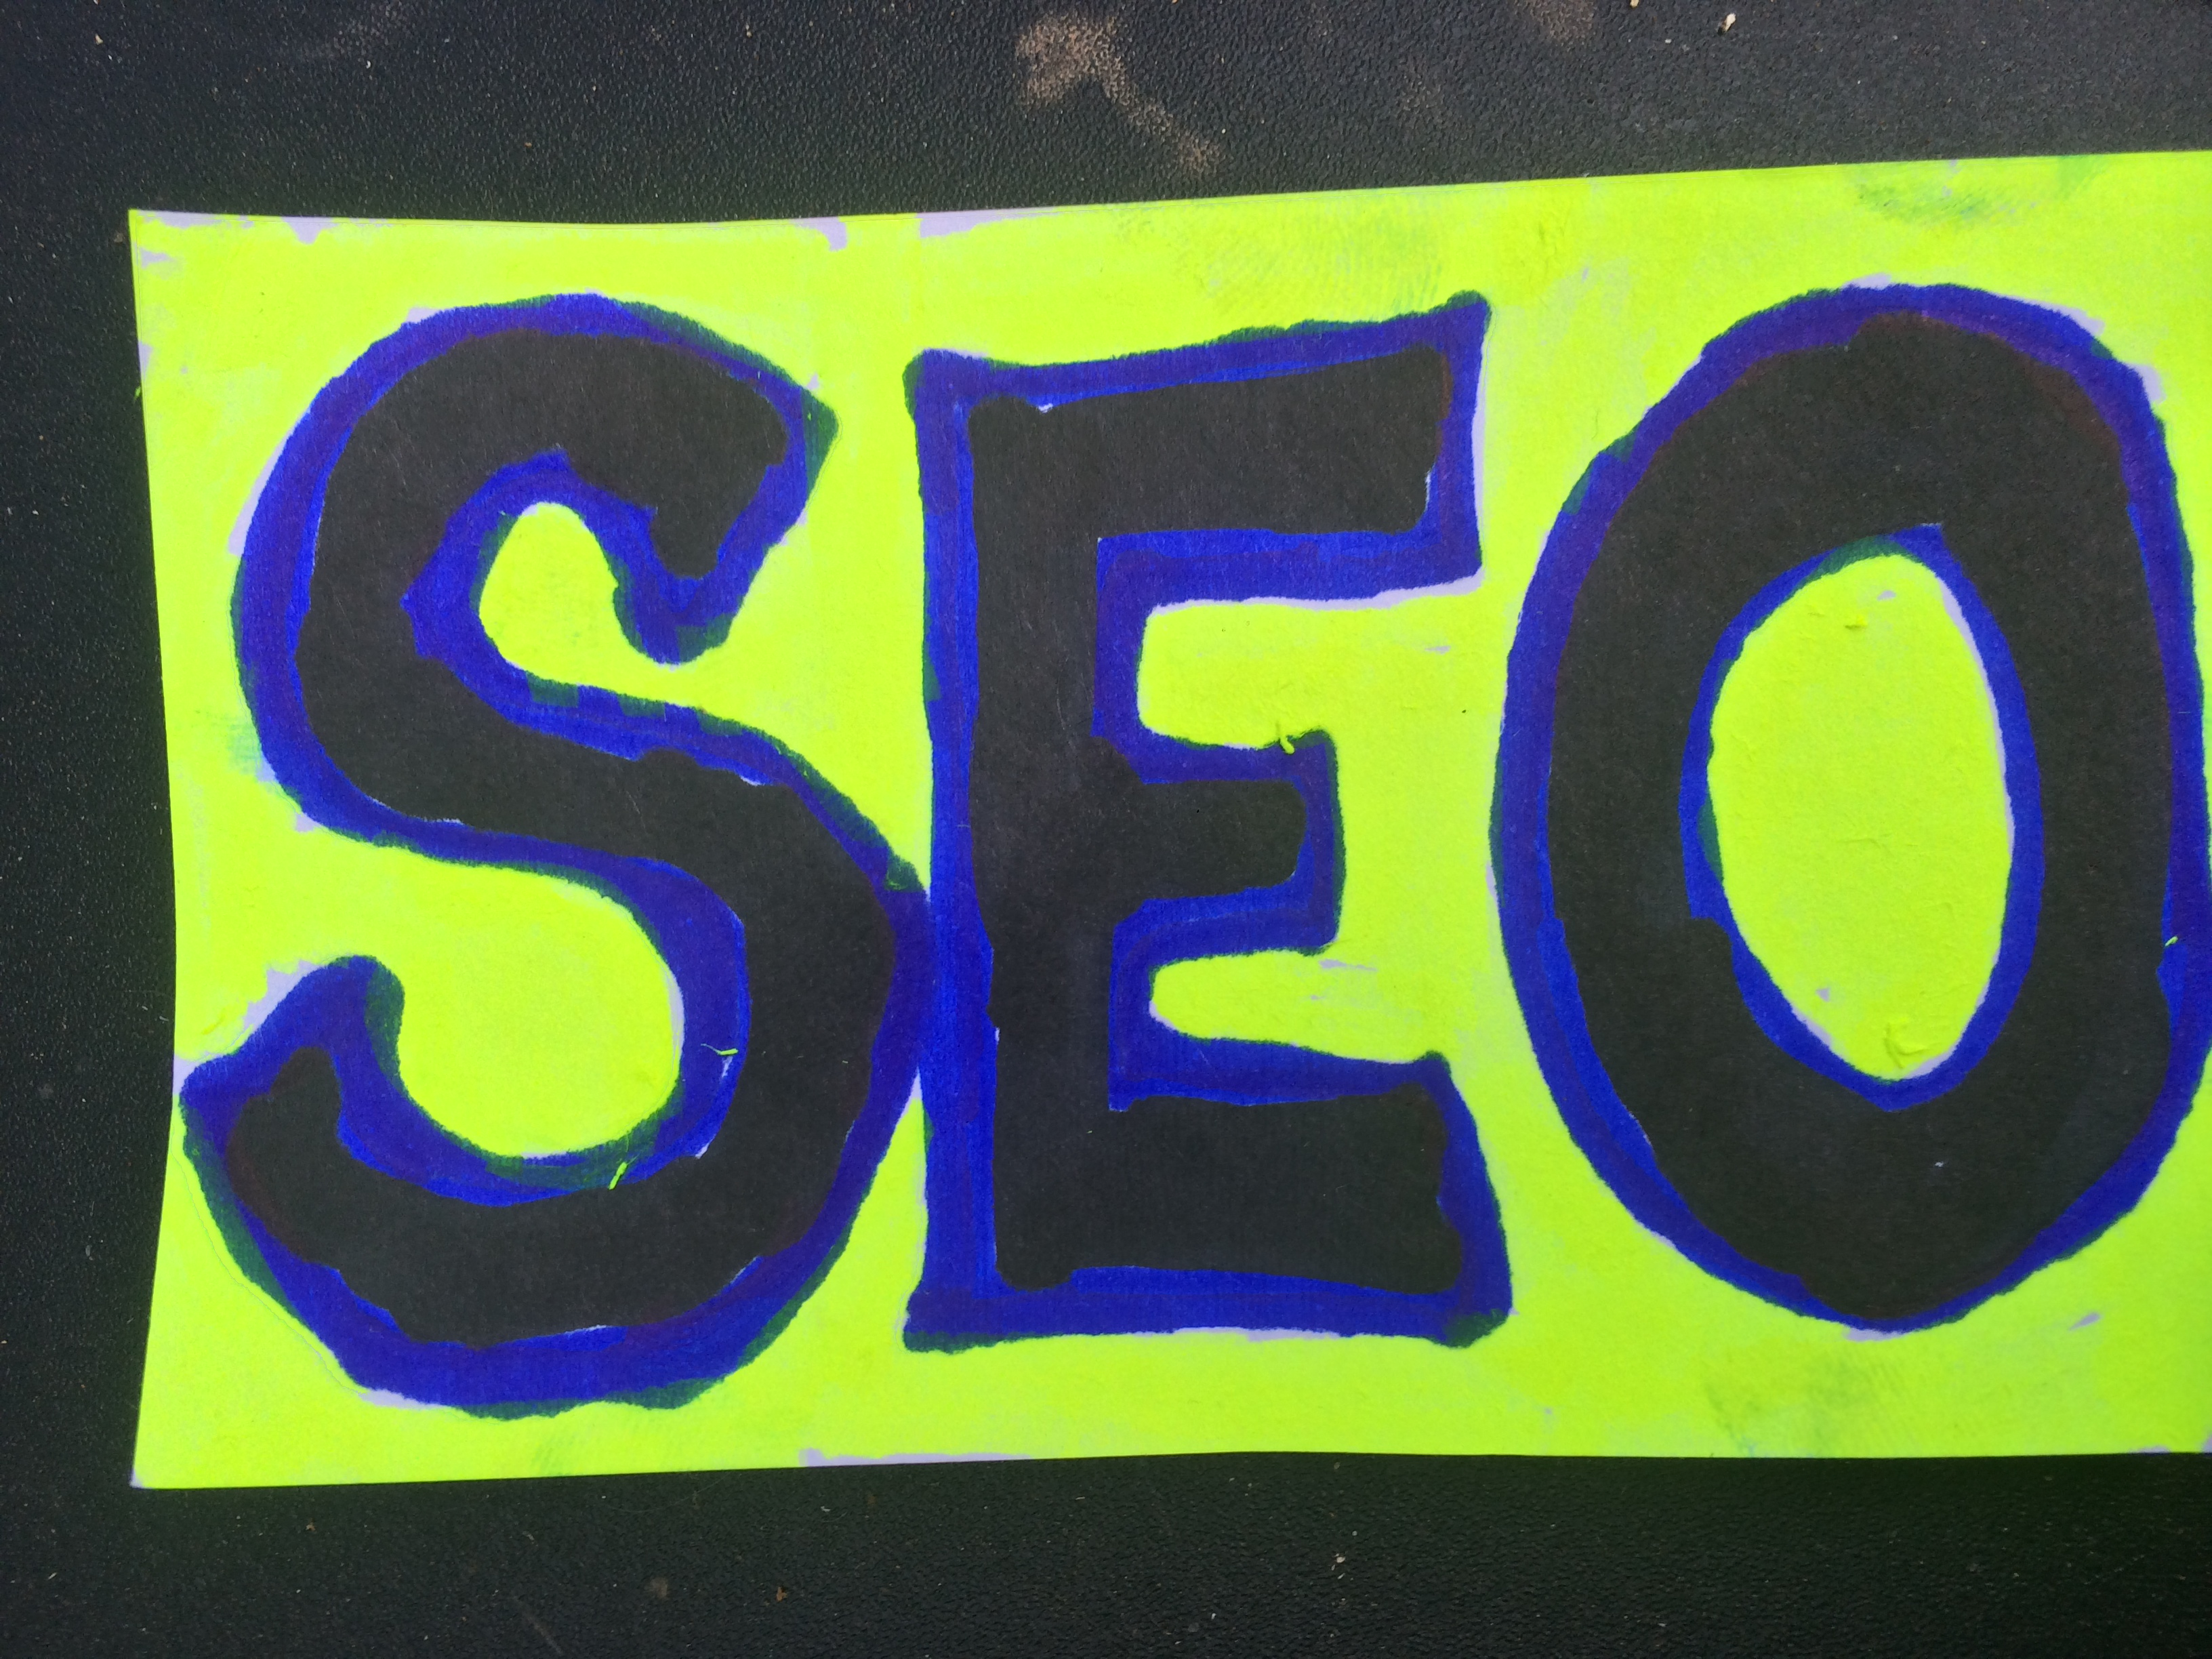 seo, online markeing,  social media, graphic design, how to , vide ranking